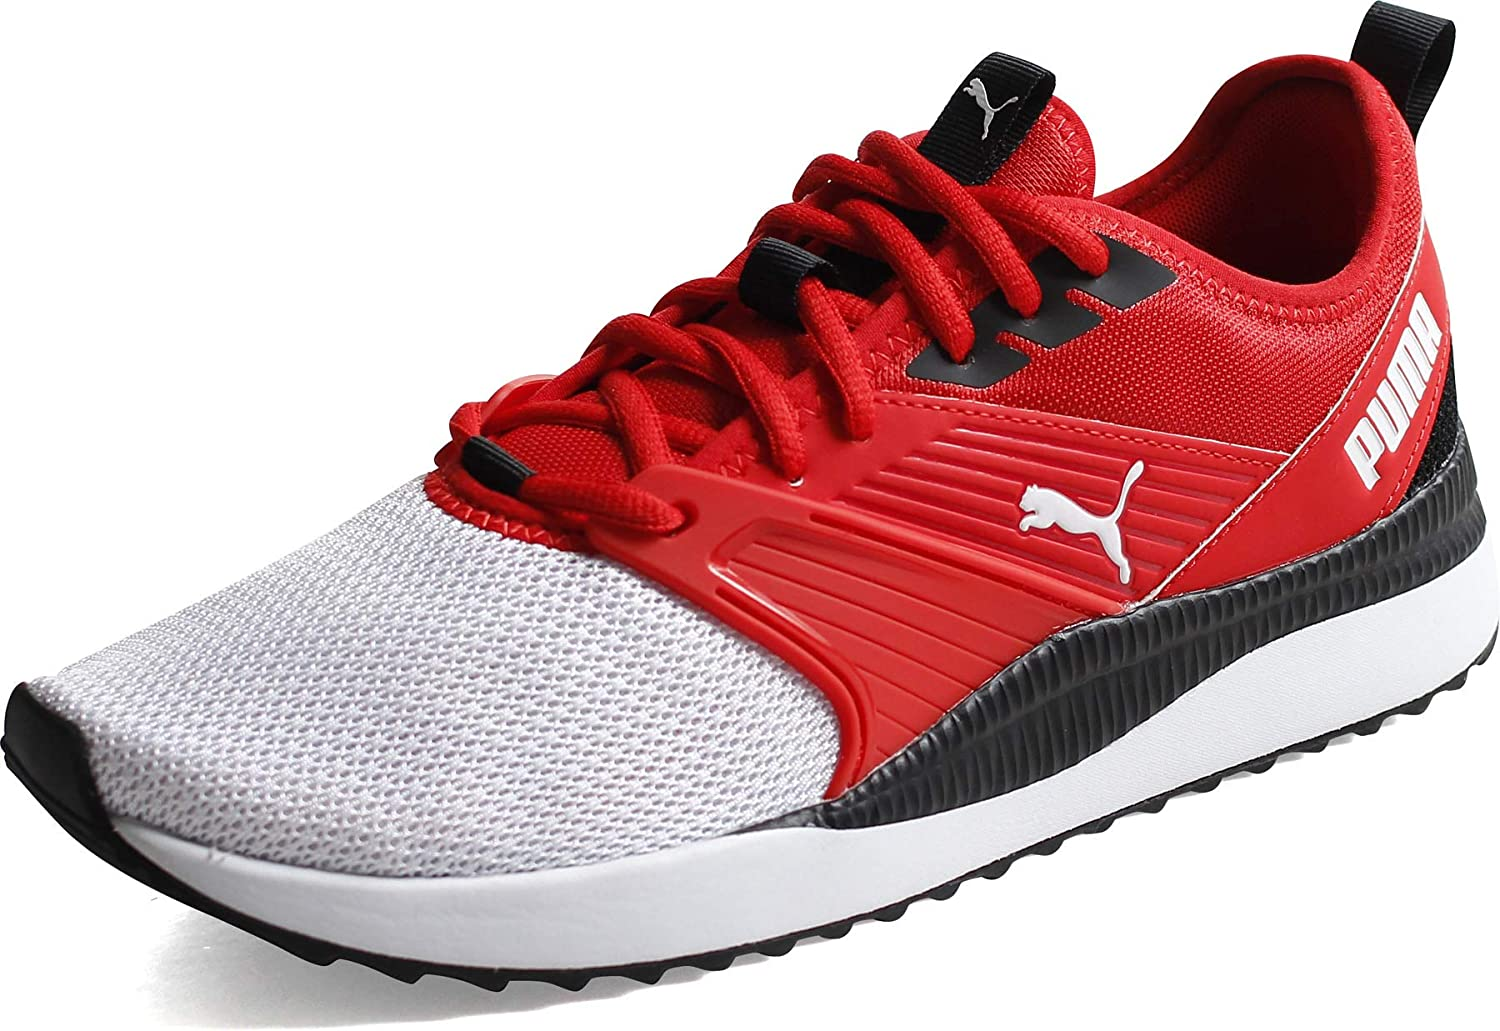 PUMA Industry No. All items free shipping 1 Men's Pacer Ffwd Sneaker Next